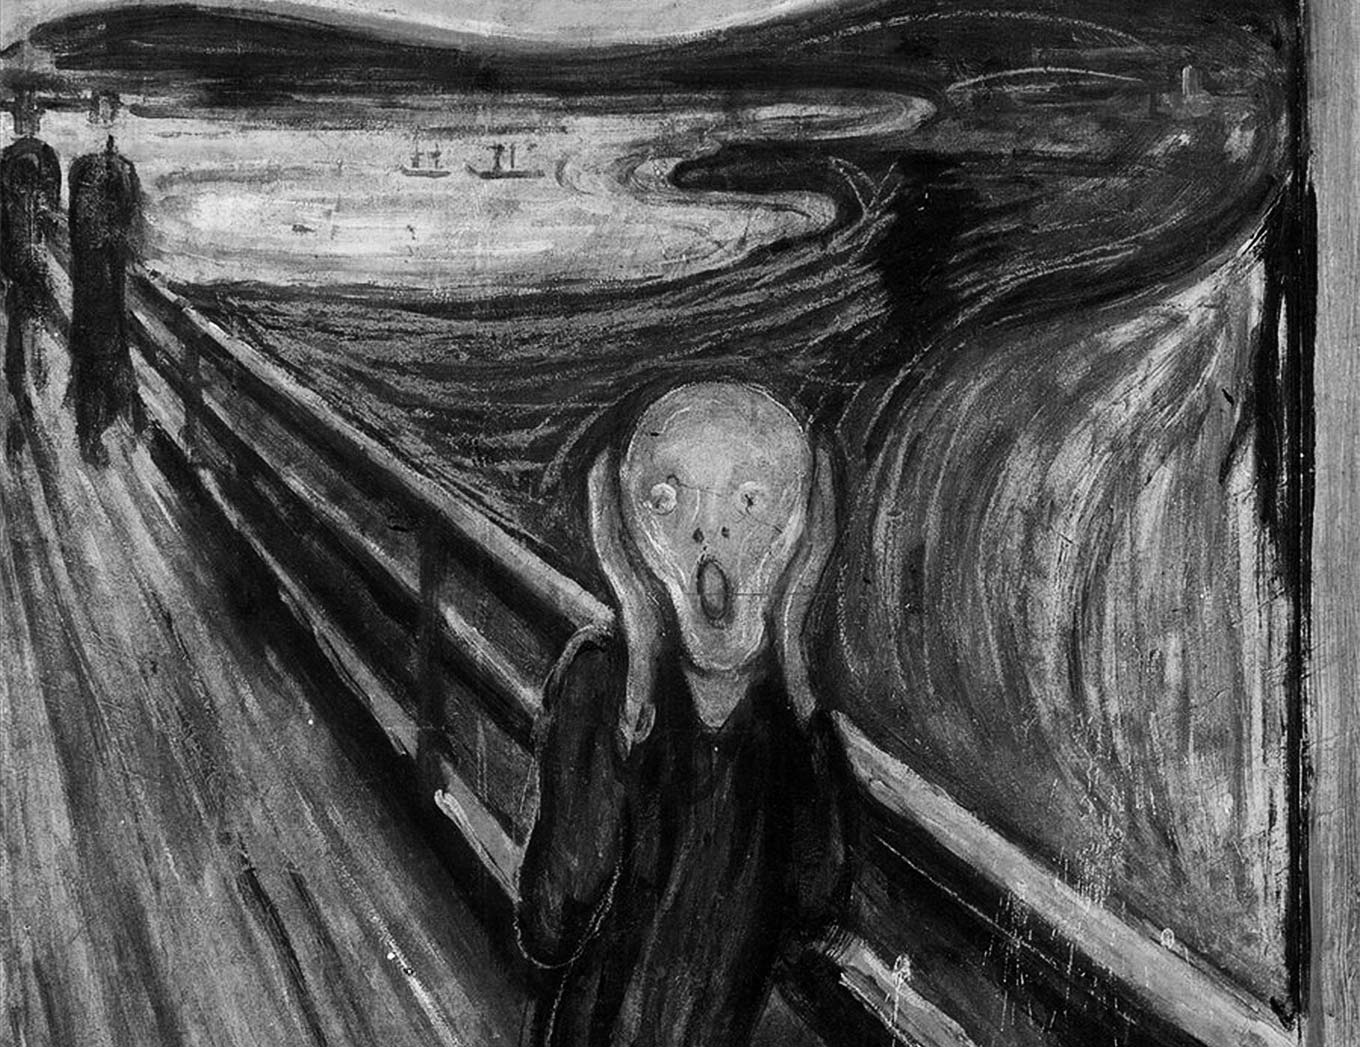 Edvard Munch's painting: The Scream